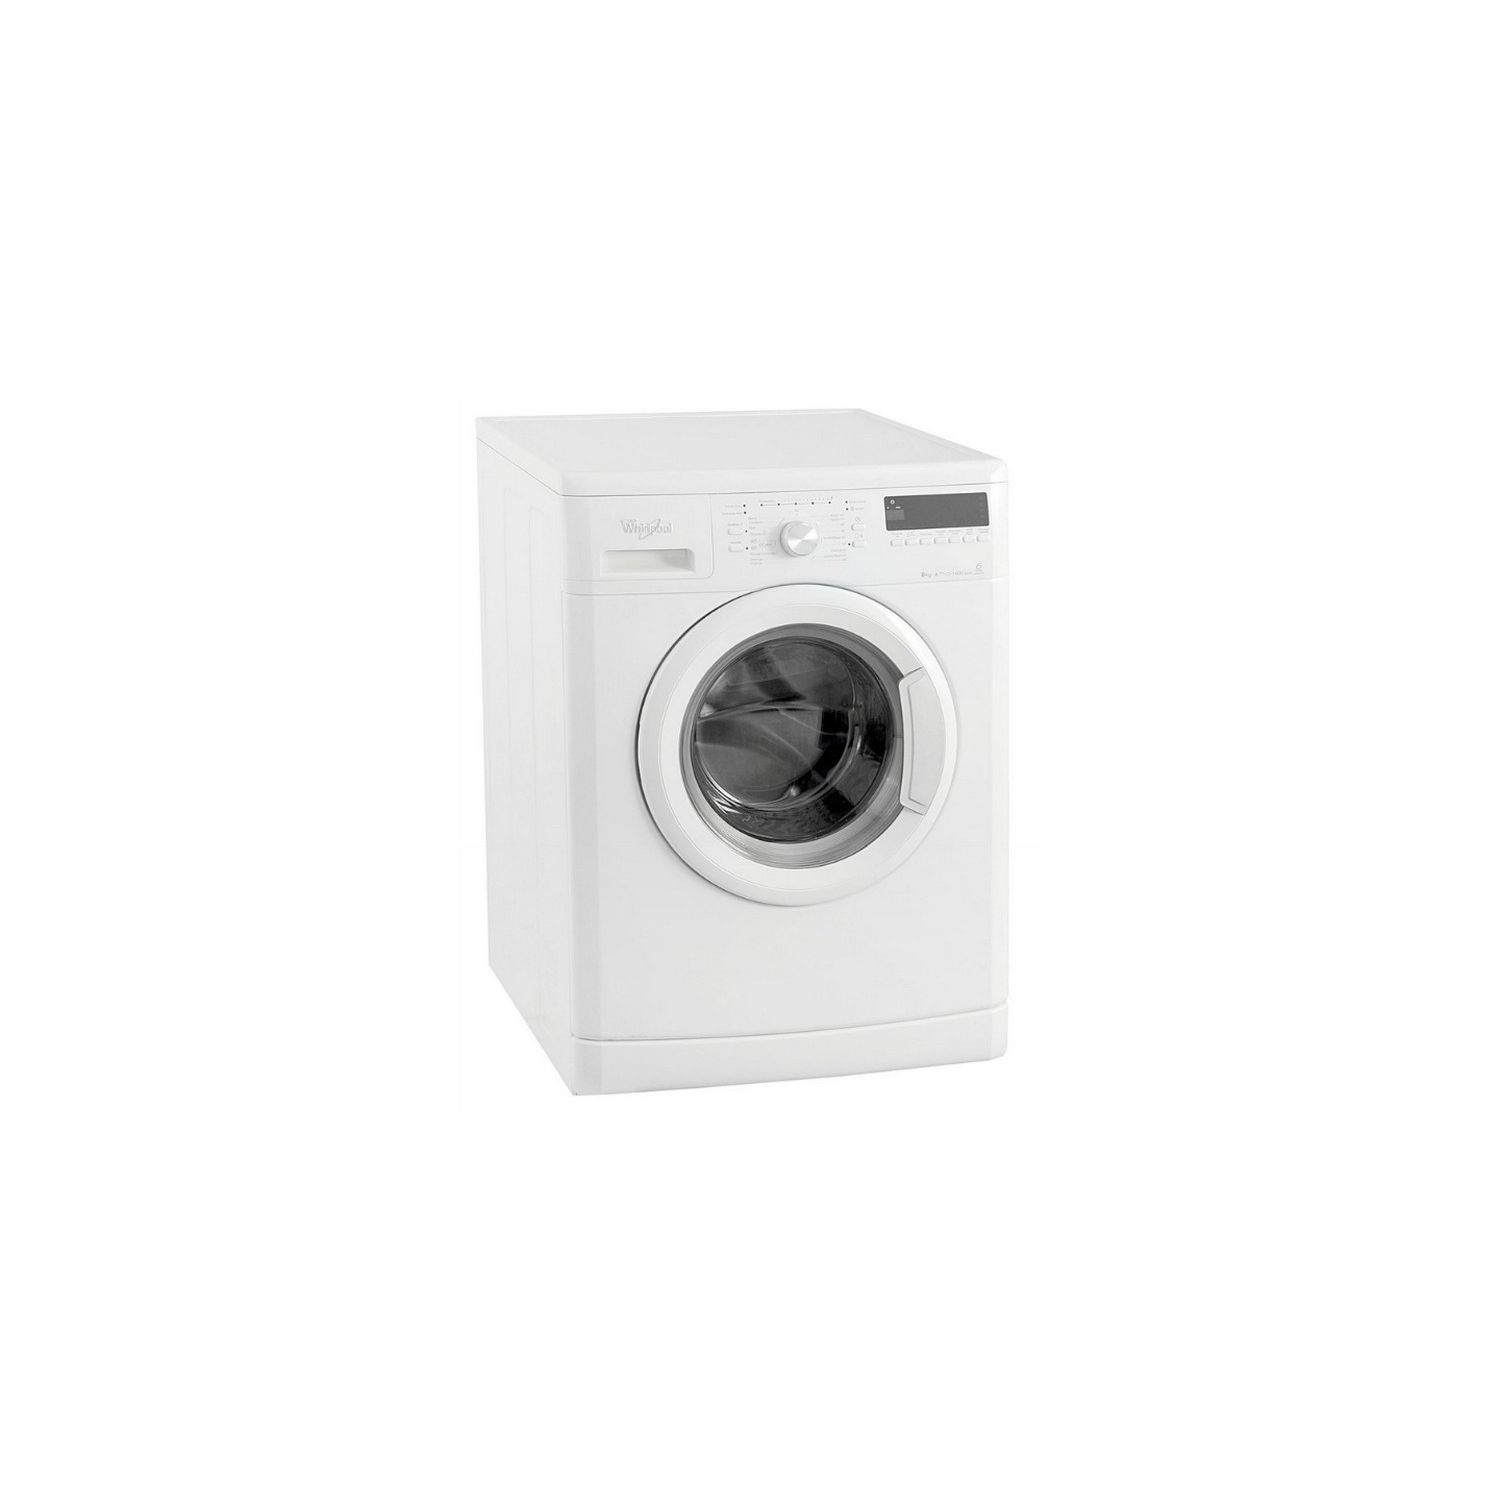 machine a laver schante latest miele lave linge frontal blanc w kg achat for machine a laver. Black Bedroom Furniture Sets. Home Design Ideas